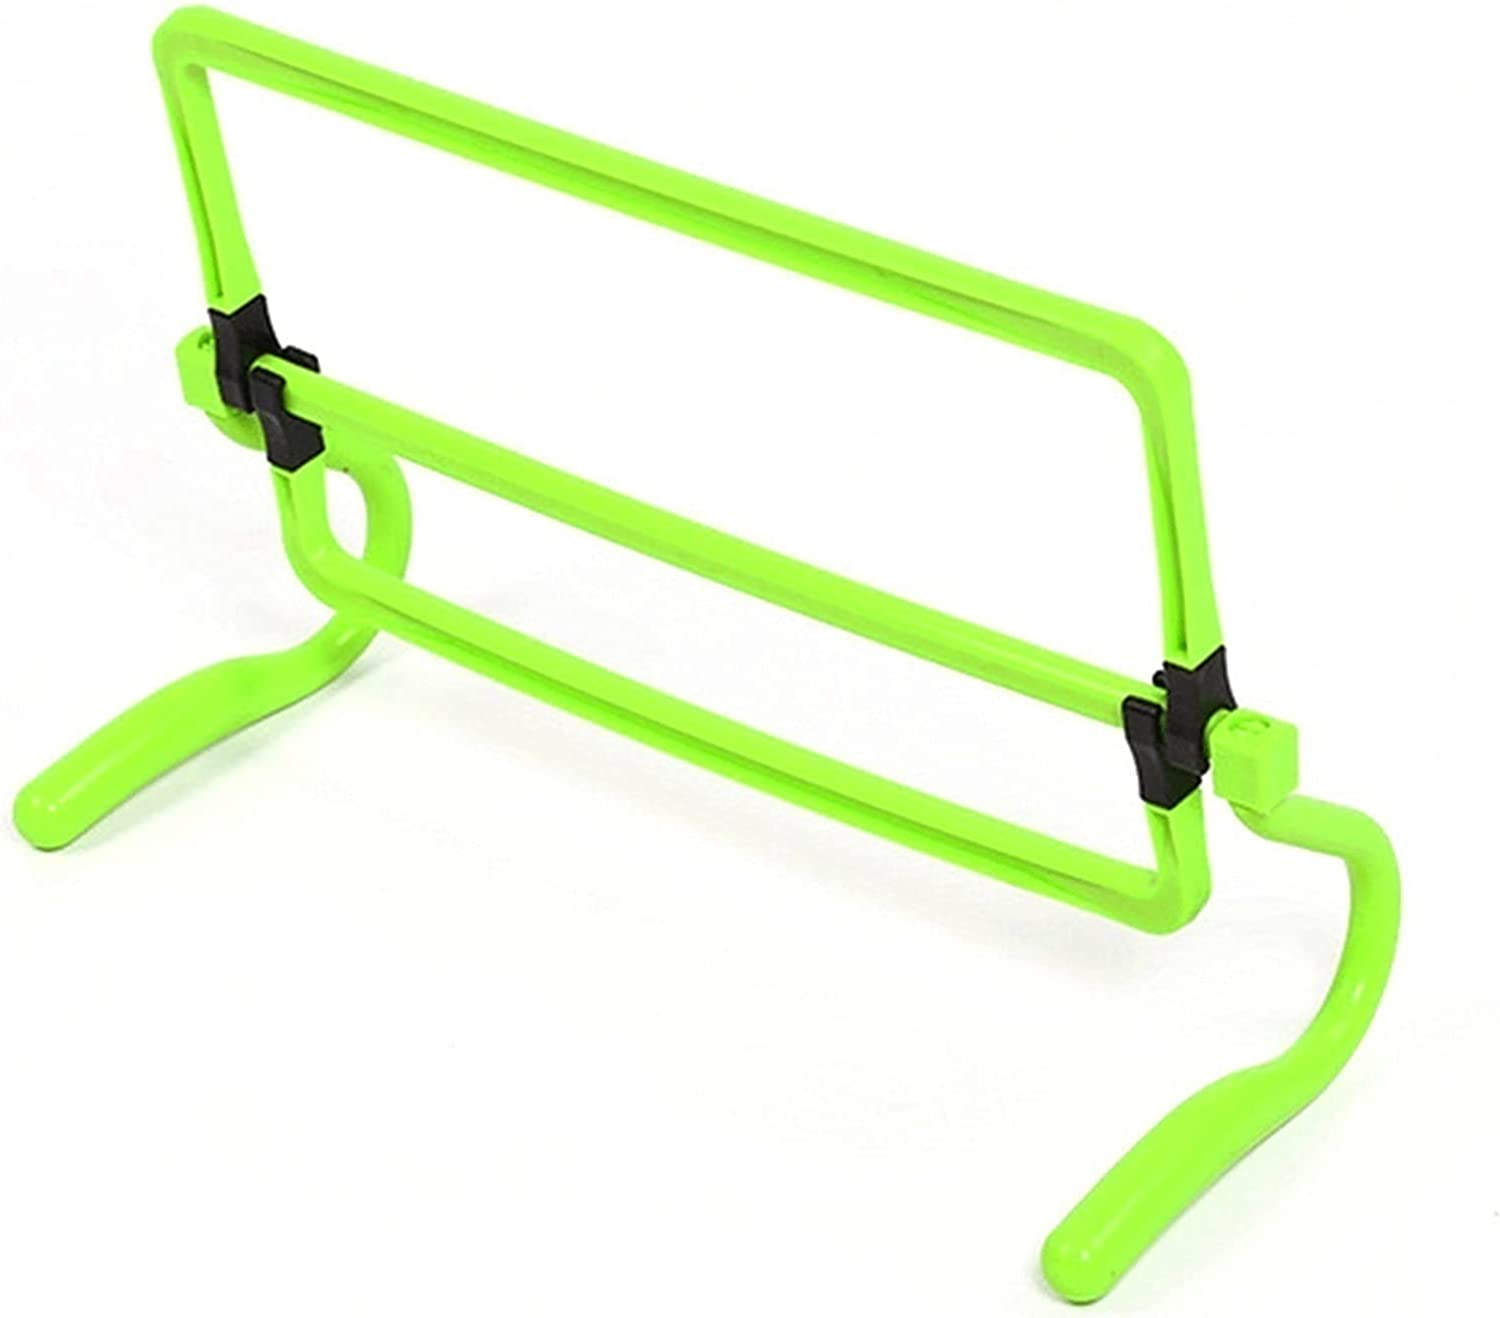 Hurdle Track and Field Obstacle Branded goods Spor Fence Outdoor Kindergarten Super special price